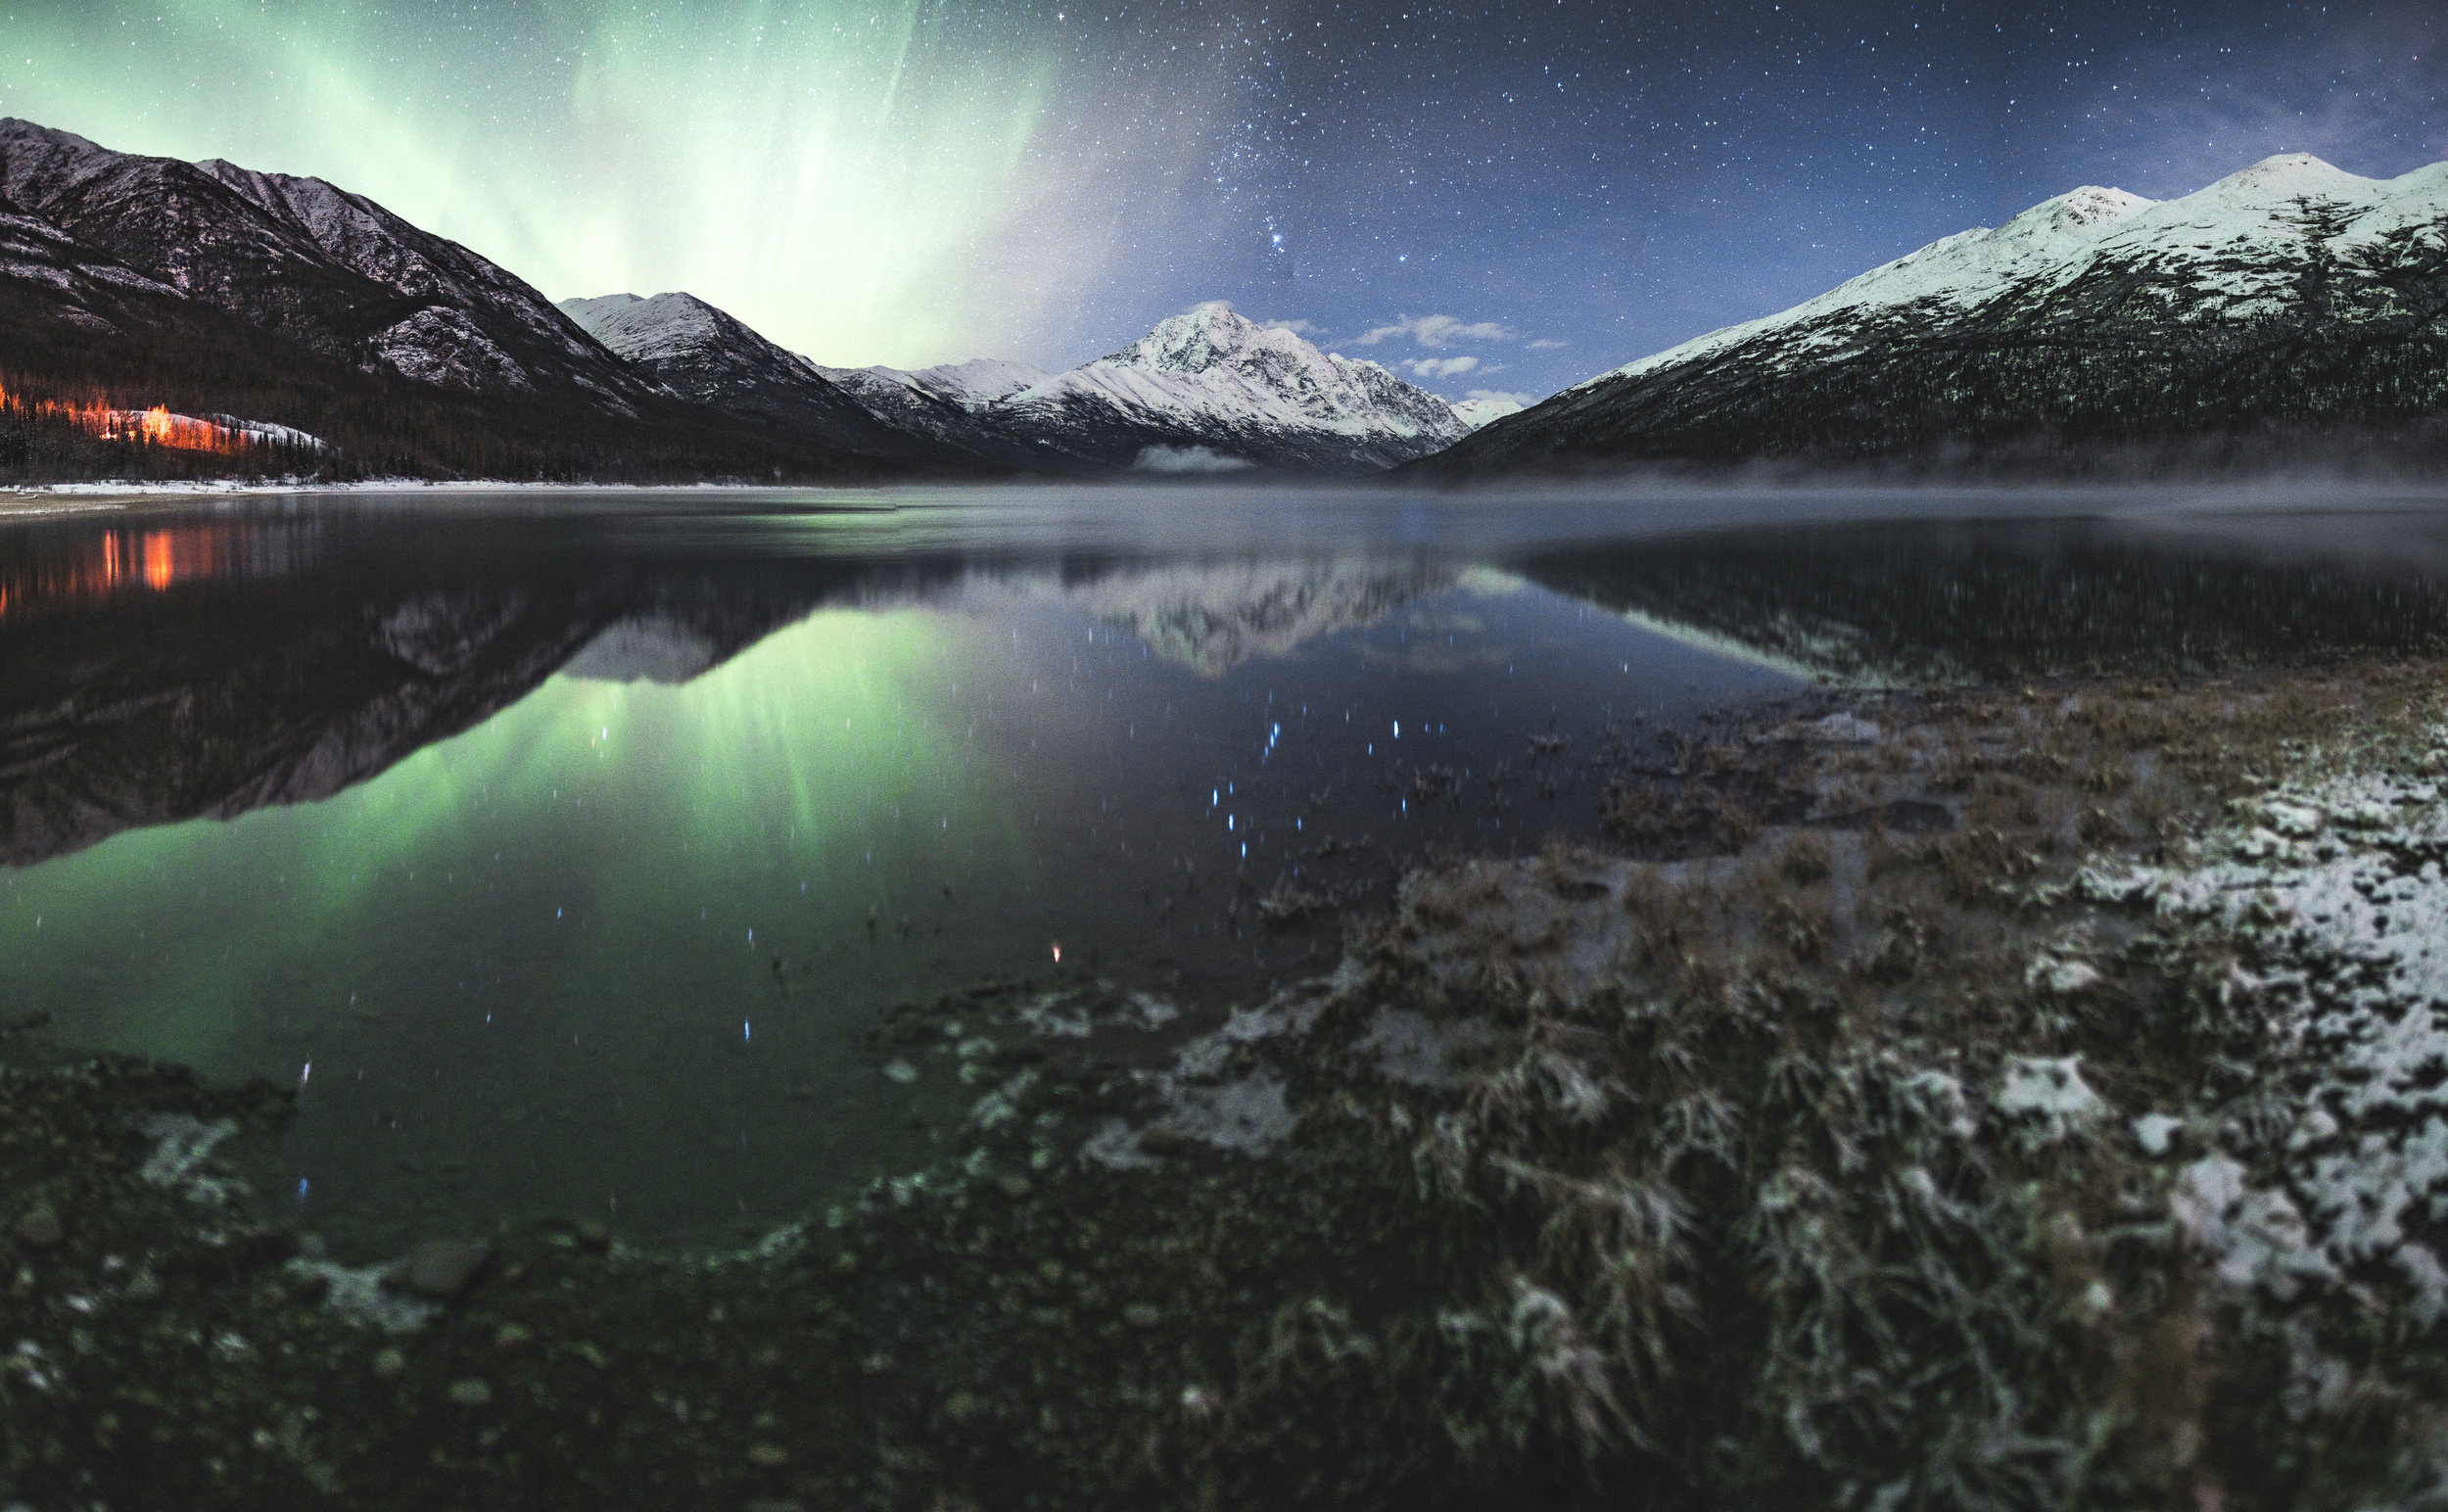 This is a panorama stitch of 32 images from Eklutna Lake in Alaska. Each image was shot at a focal length of 24mm, f/1.4, 8.0 seconds, and an ISO of 320. The images were then stitched together using Adobe Lightroom.